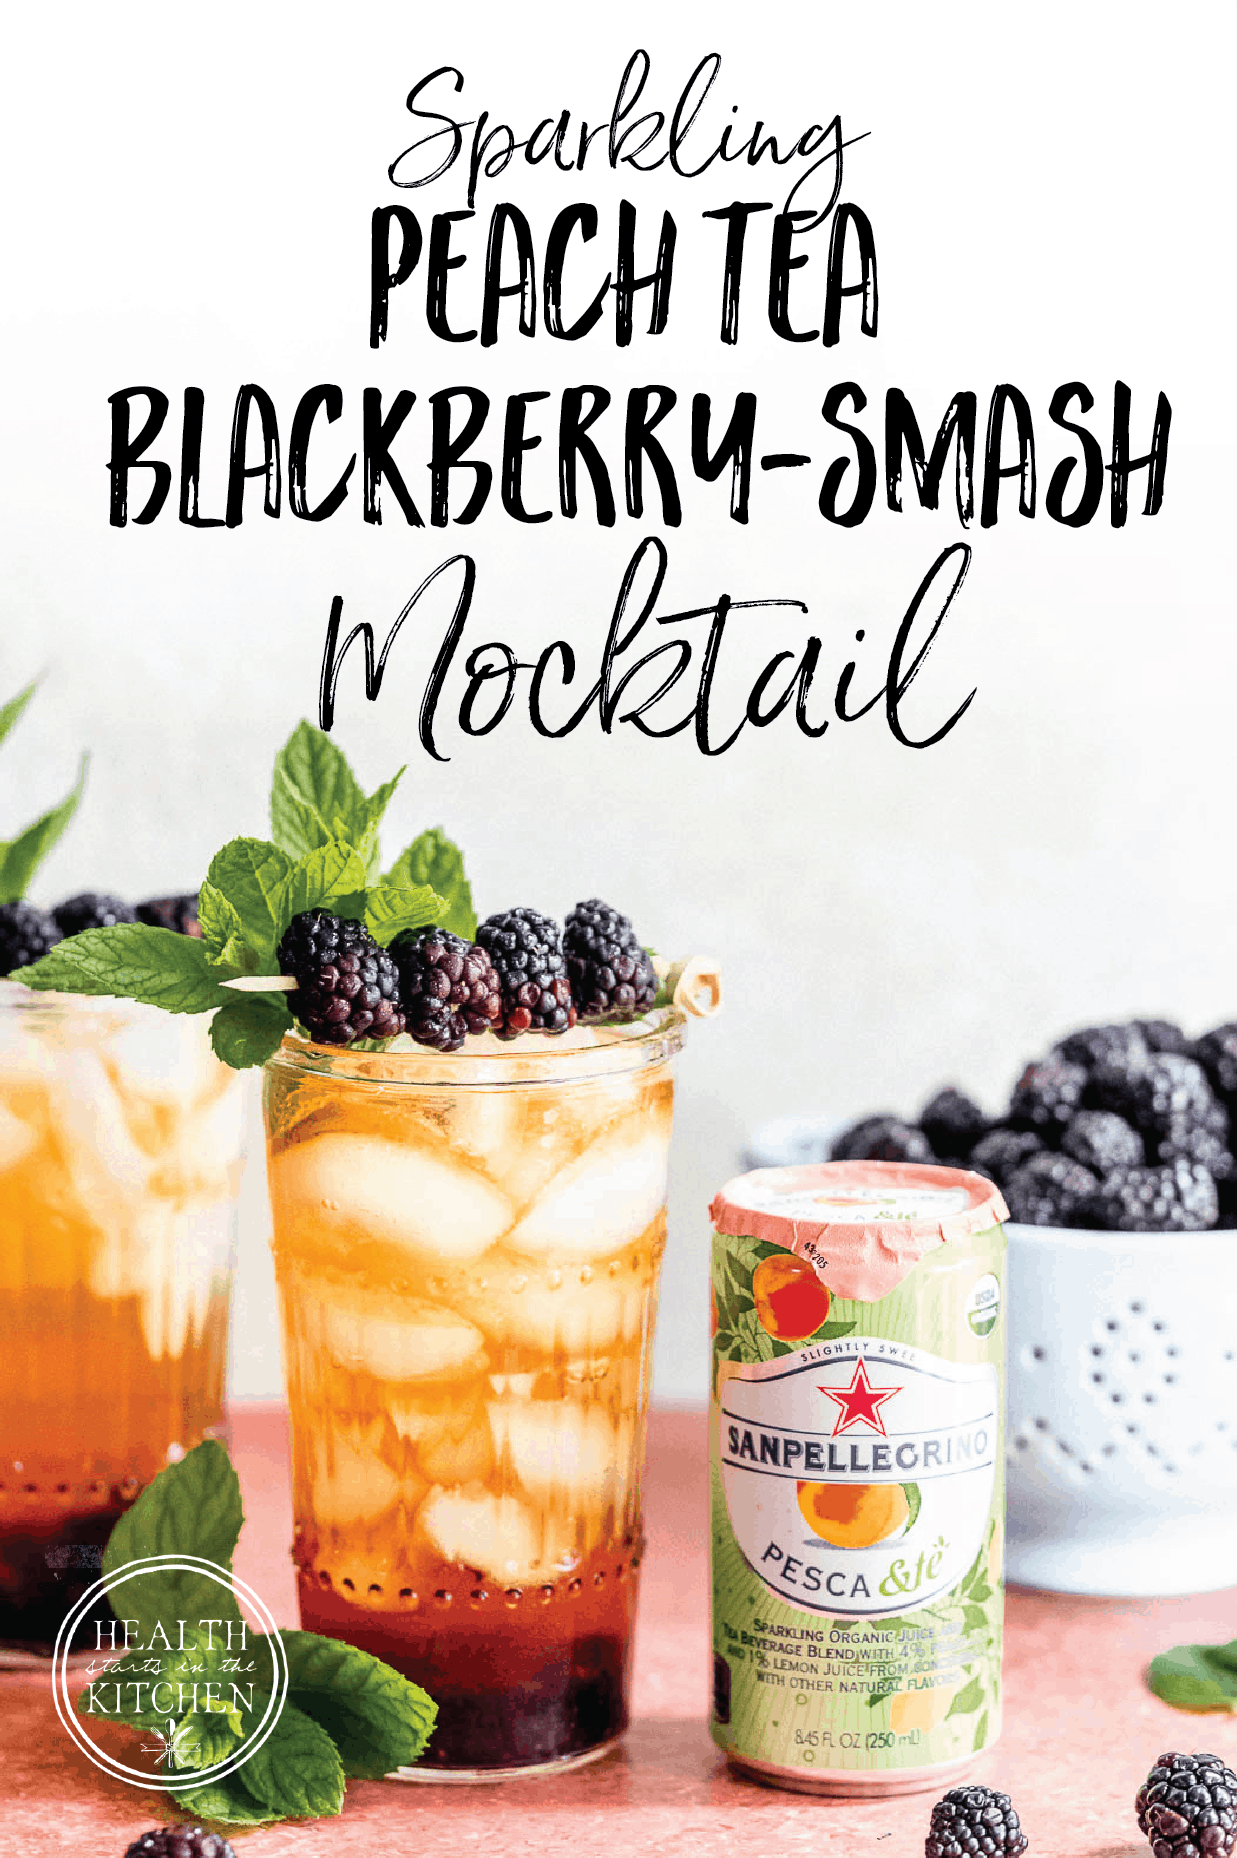 Sparkling Peach Tea Blackberry Smash Mocktail